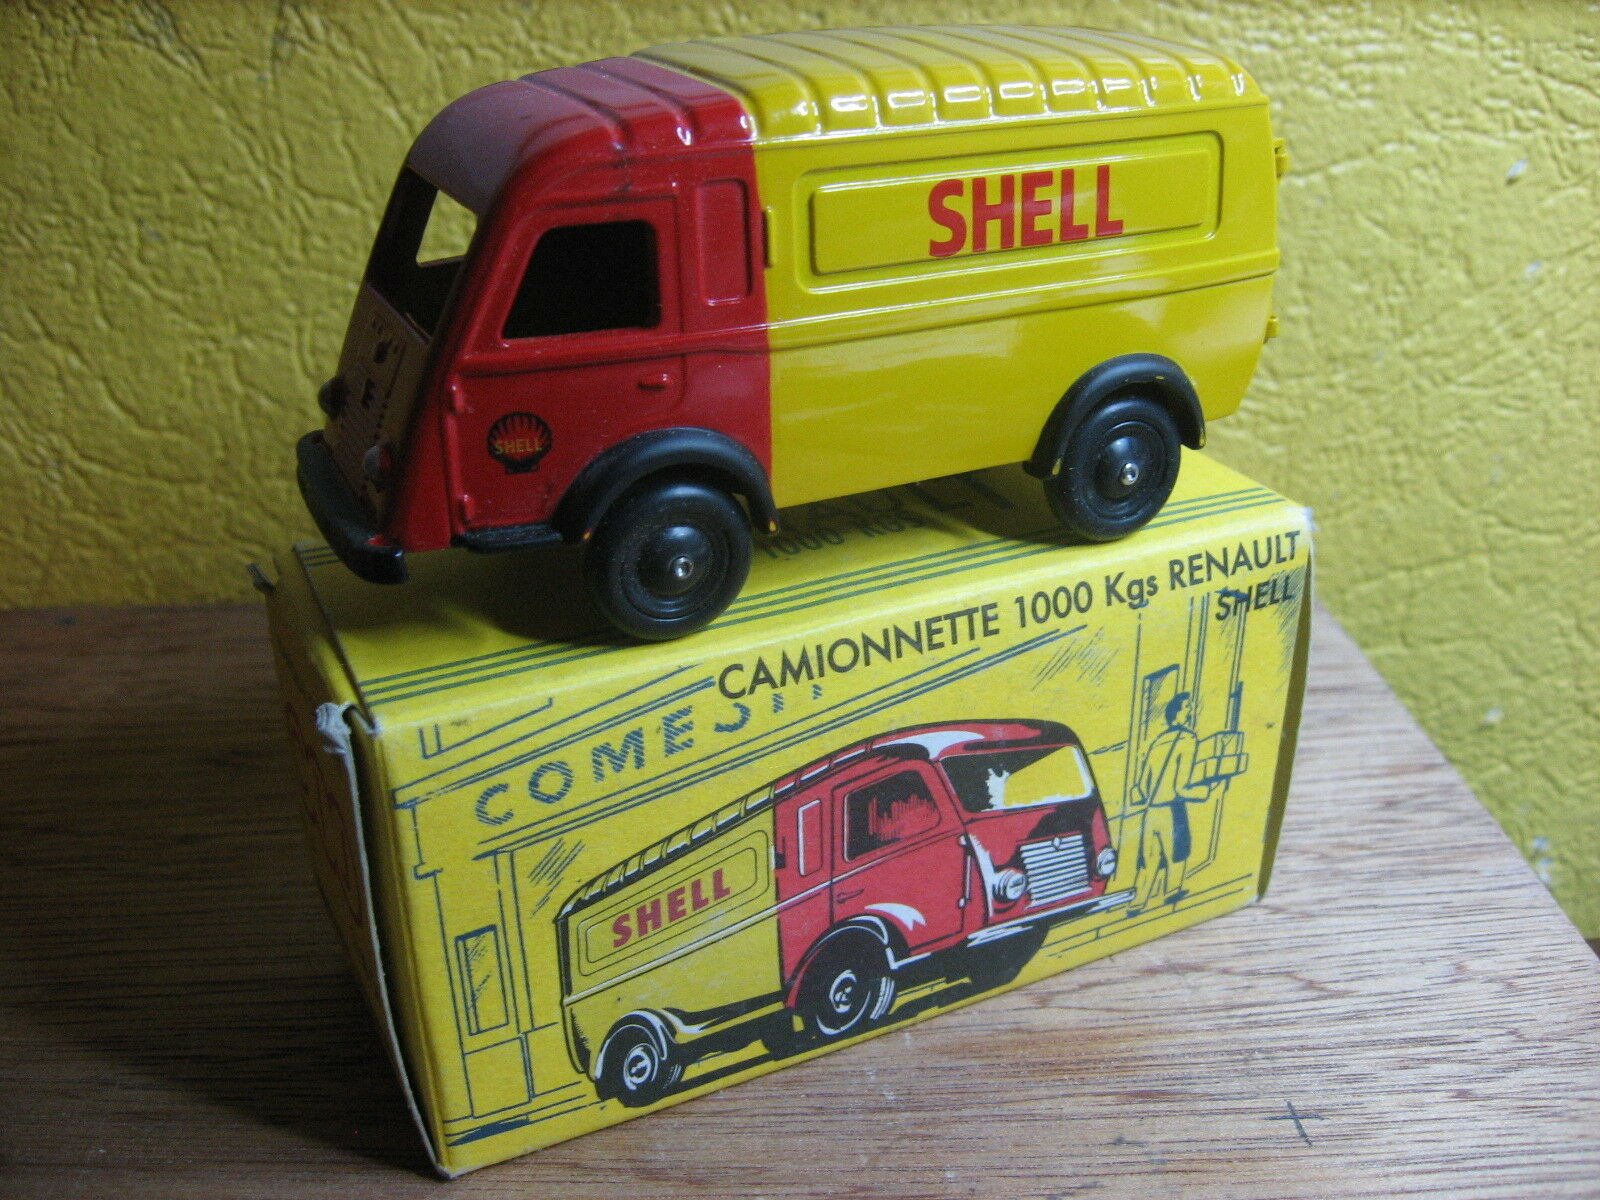 C I J REEDITION RENAULT 1000 KGS SHELL REF 3 60 S1  NOREV